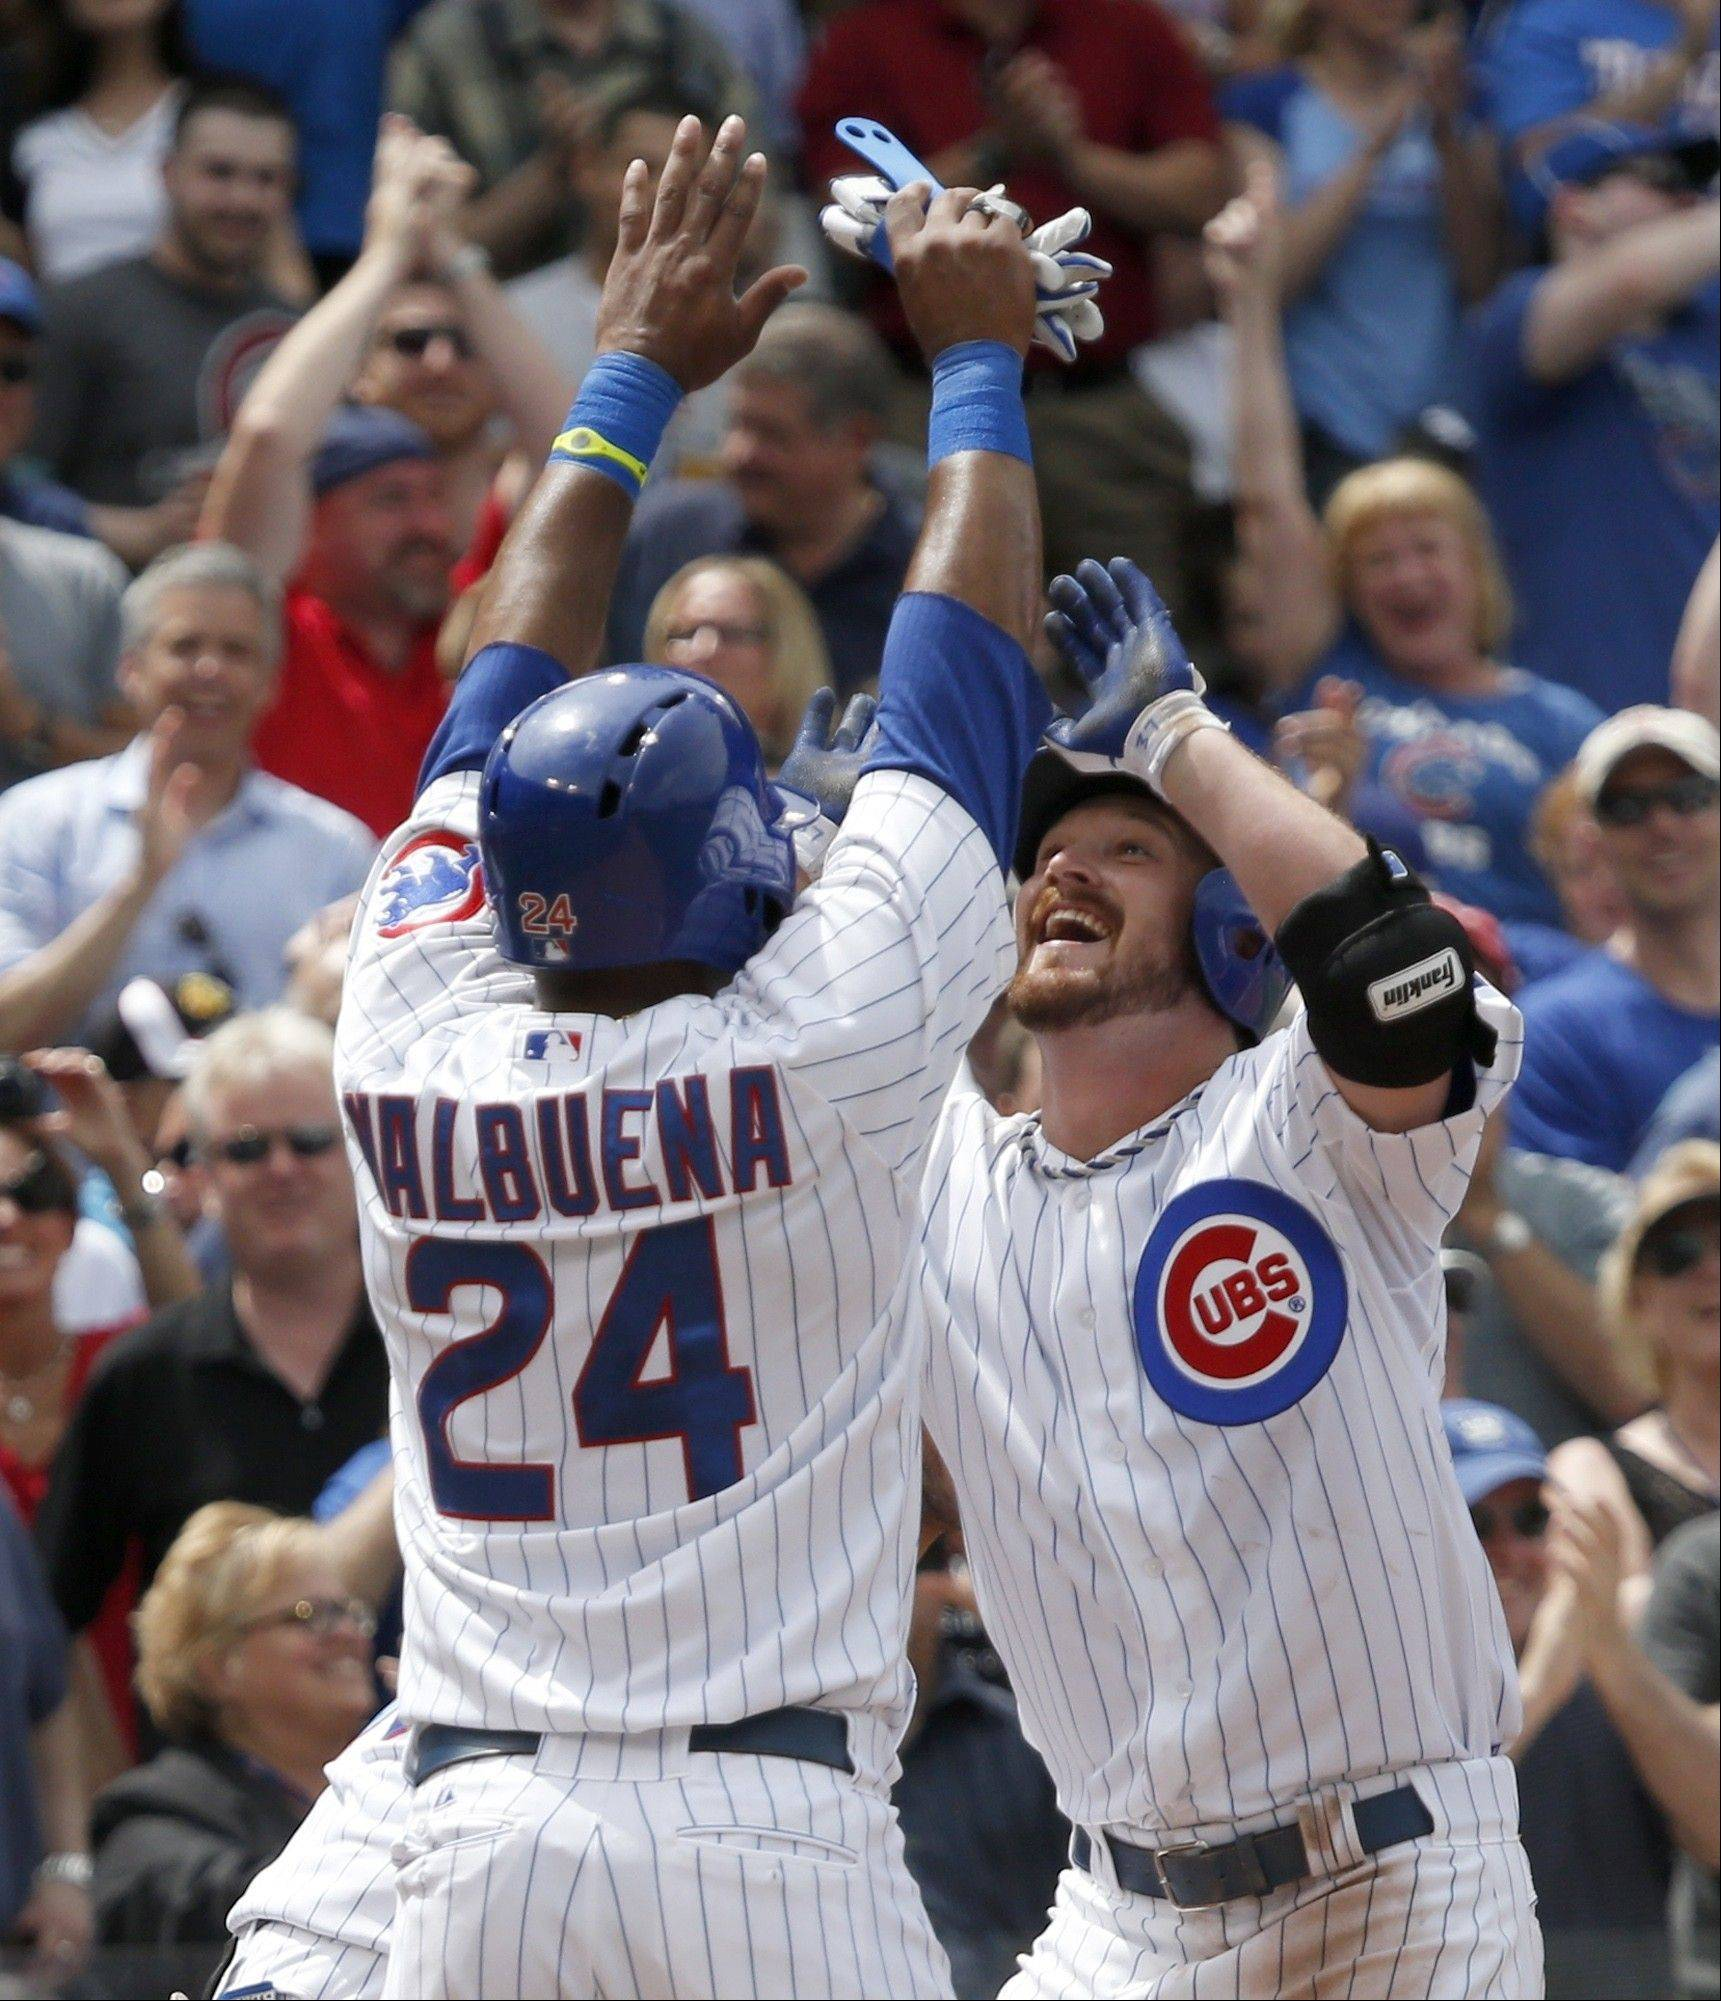 Chicago Cubs' Travis Wood, right, celebrates at home plate with Luis Valbuena after hitting a grand slam off Chicago White Sox starting pitcher Jake Peavy during the fourth inning of an interleague baseball game Thursday, May 30, 2013, in Chicago. The Cubs' Darwin Barney and Welington Castillo also scored on the hit.